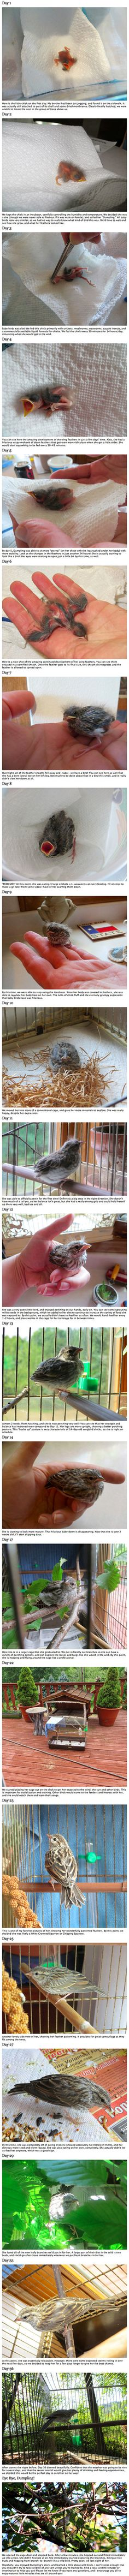 A veterinarian was jogging one day when he stumbled upon this tiny freshly hatched songbird that had fallen out of its nest. Unable to locate the nest so he could return the baby bird to it, he decided to take it home and hand raise it himself. Here is the amazingly beautiful story...